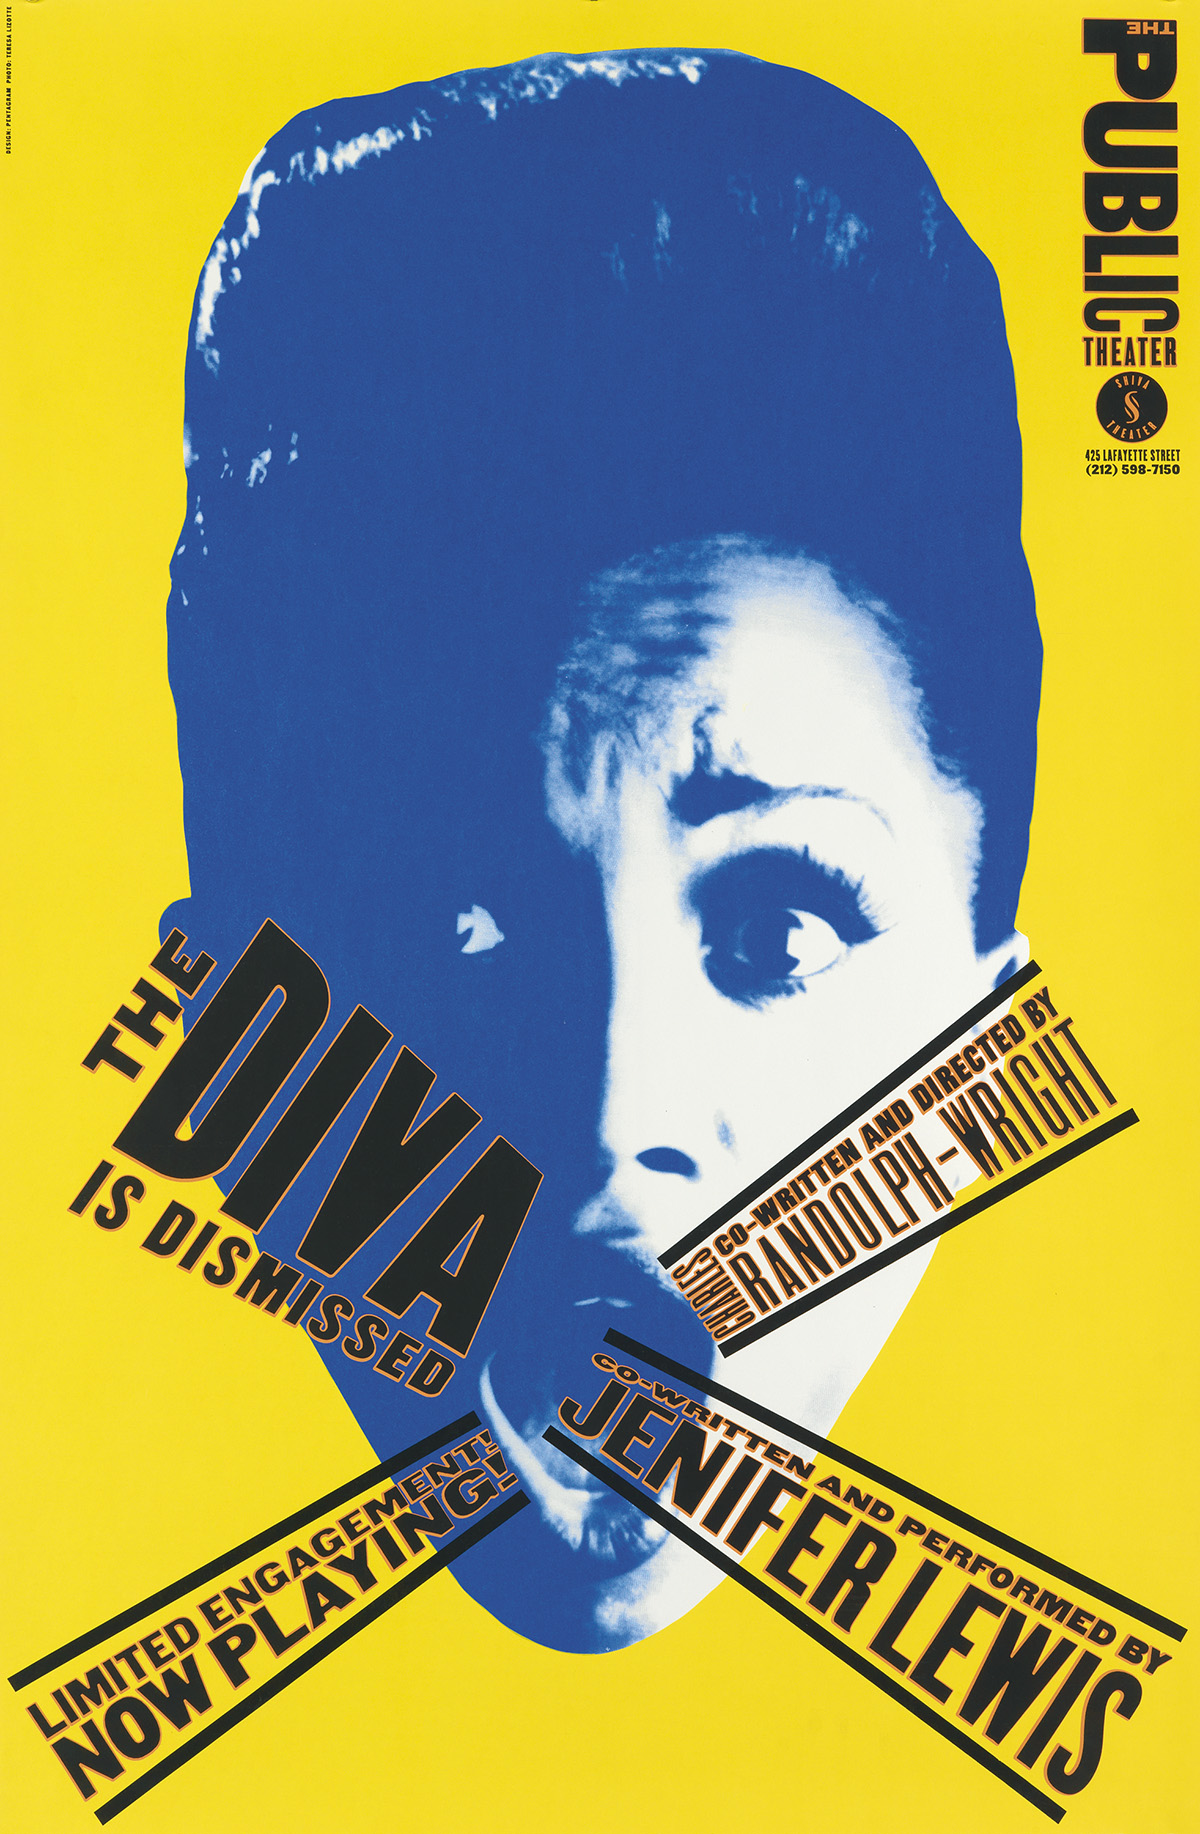 PAULA-SCHER-(1948--)-THE-PUBLIC-THEATER-Group-of-7-posters-C